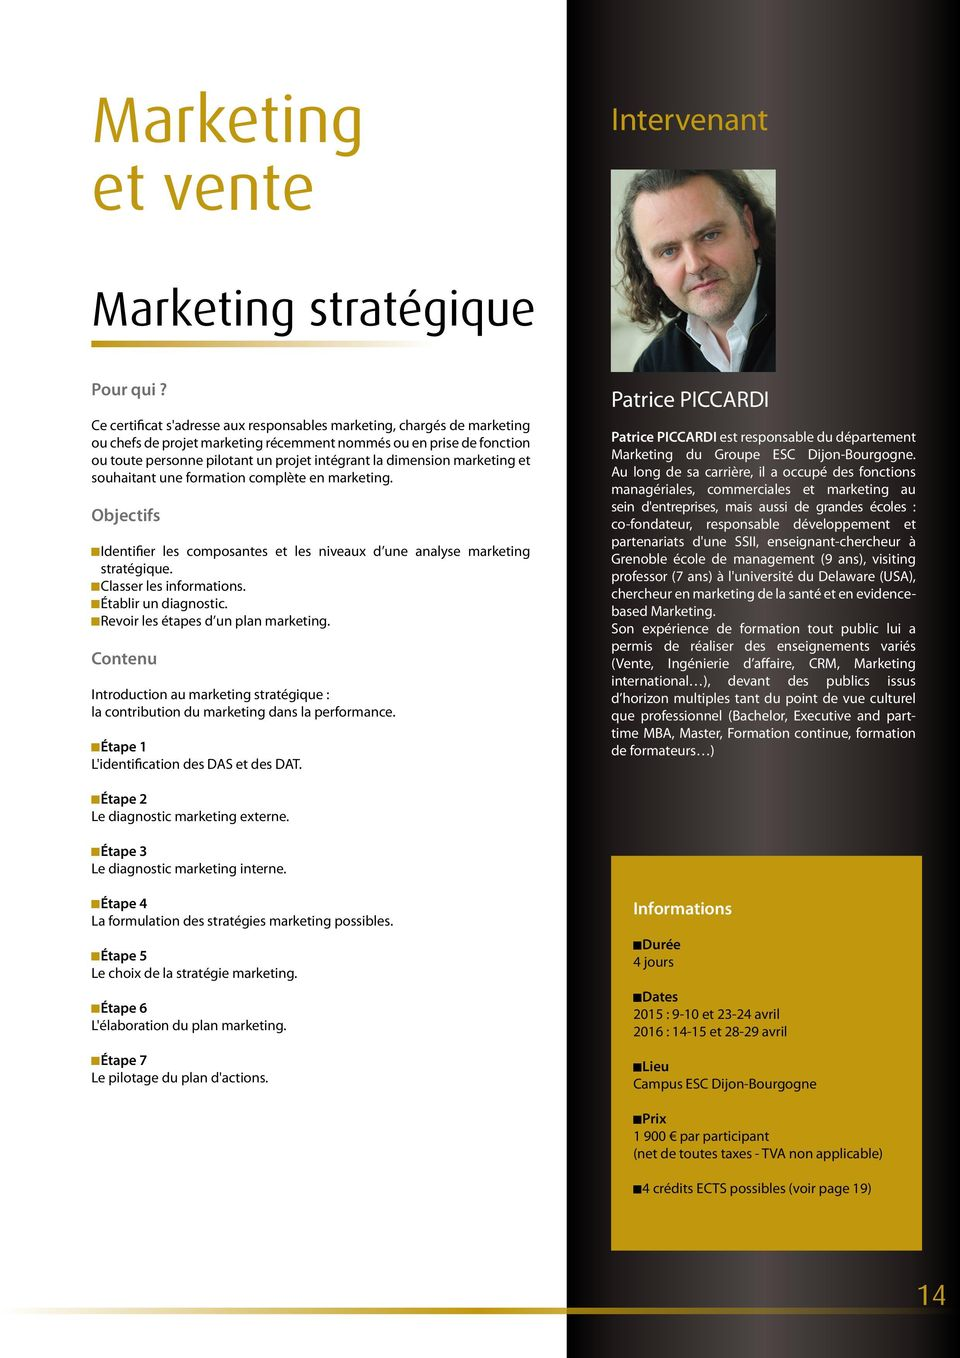 JClasser J les informations. JÉtablir J un diagnostic. JRevoir J les étapes d un plan marketing. Introduction au marketing stratégique : la contribution du marketing dans la performance.